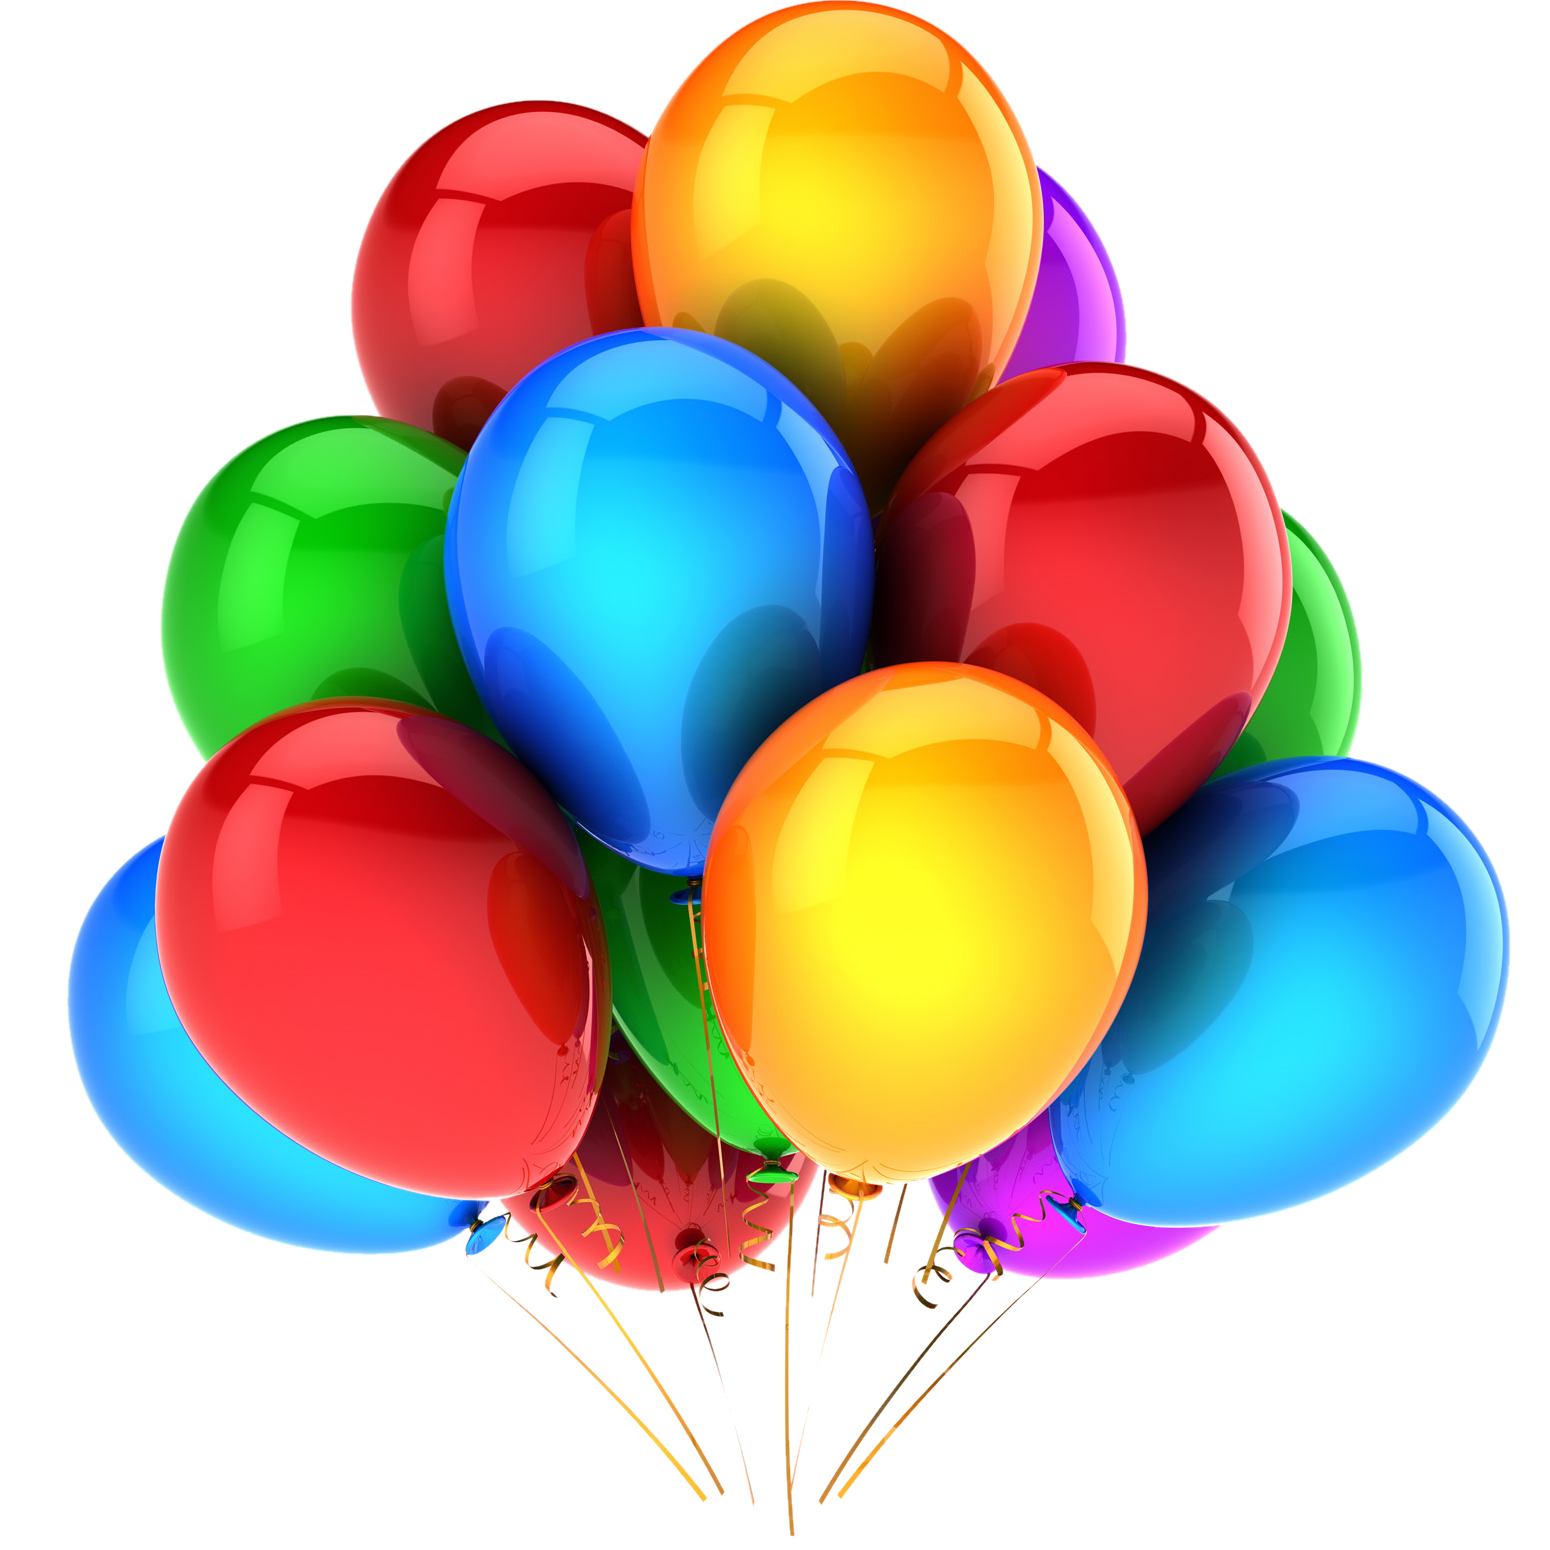 Colorful Balloon Png image #28079